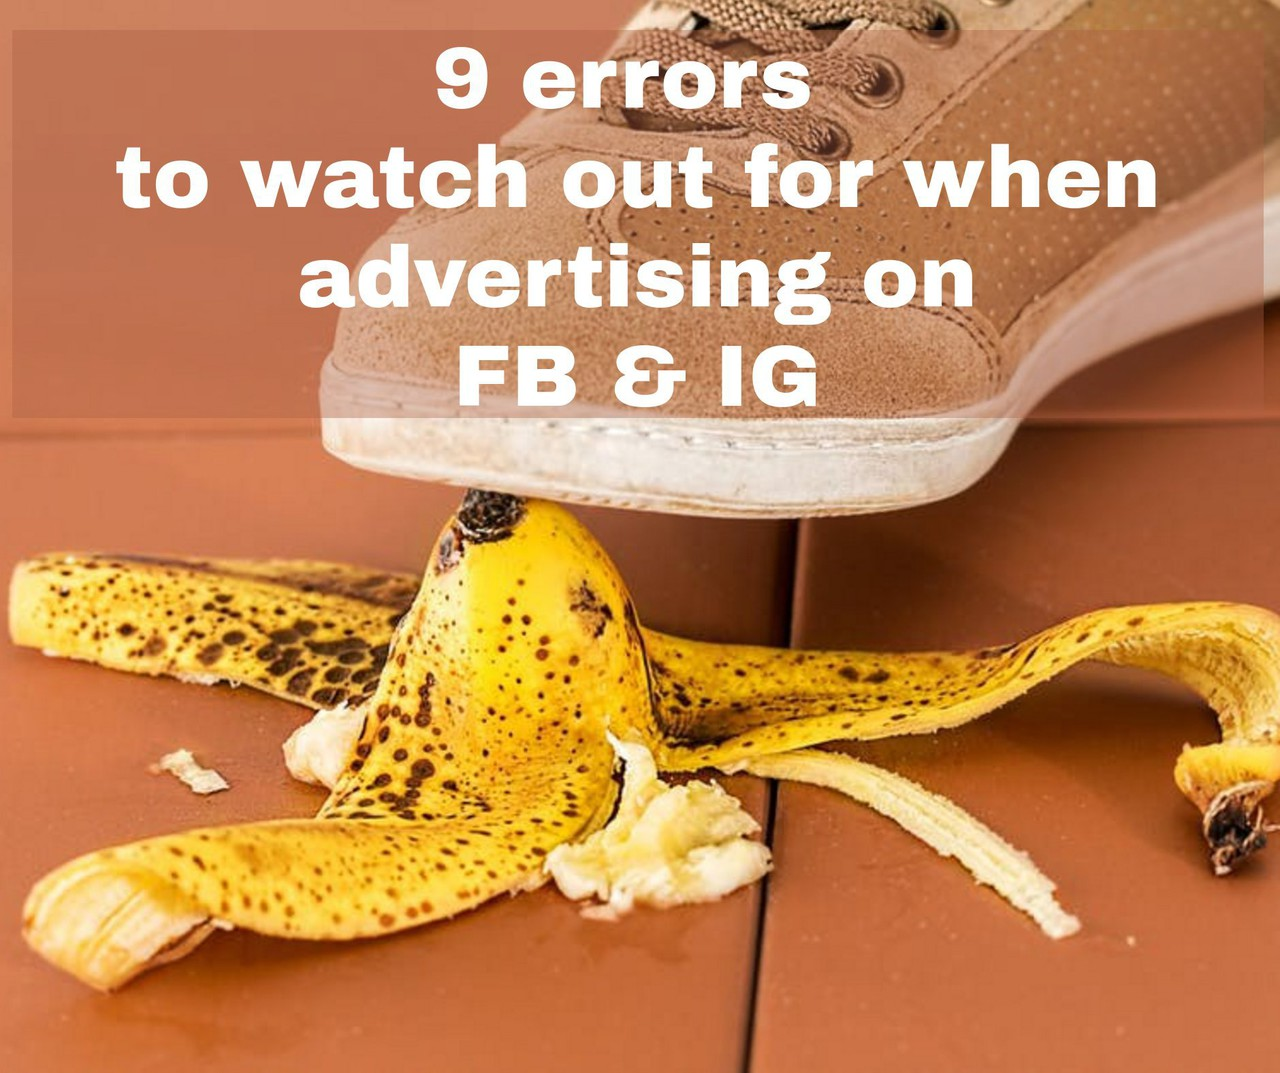 Checklist: 9 errors to watch out for when advertising on Facebook and Instagram